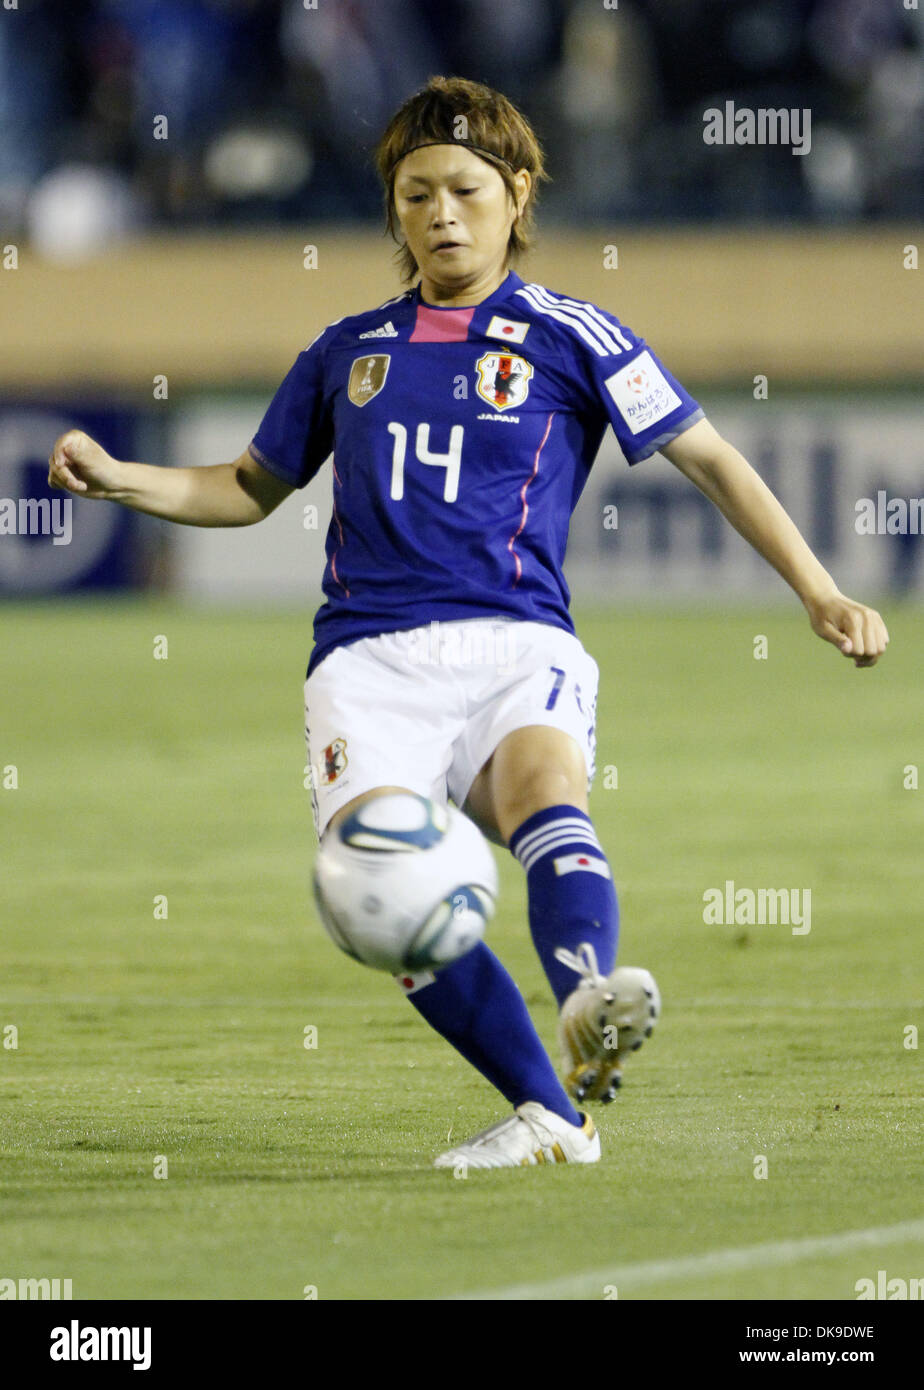 Aug. 19, 2011 - Tokyo, Japan - MEGUMI KAMIONOBE of Japan Women's National Team in action during the charity match for the earthquake and tsunami victims at the National Stadium in Tokyo, Japan. Japan Women's National Team defeated Nadeshiko League Team by 3-2. (Credit Image: © Shugo Takemi/Jana Press/ZUMAPRESS.com) - Stock Image